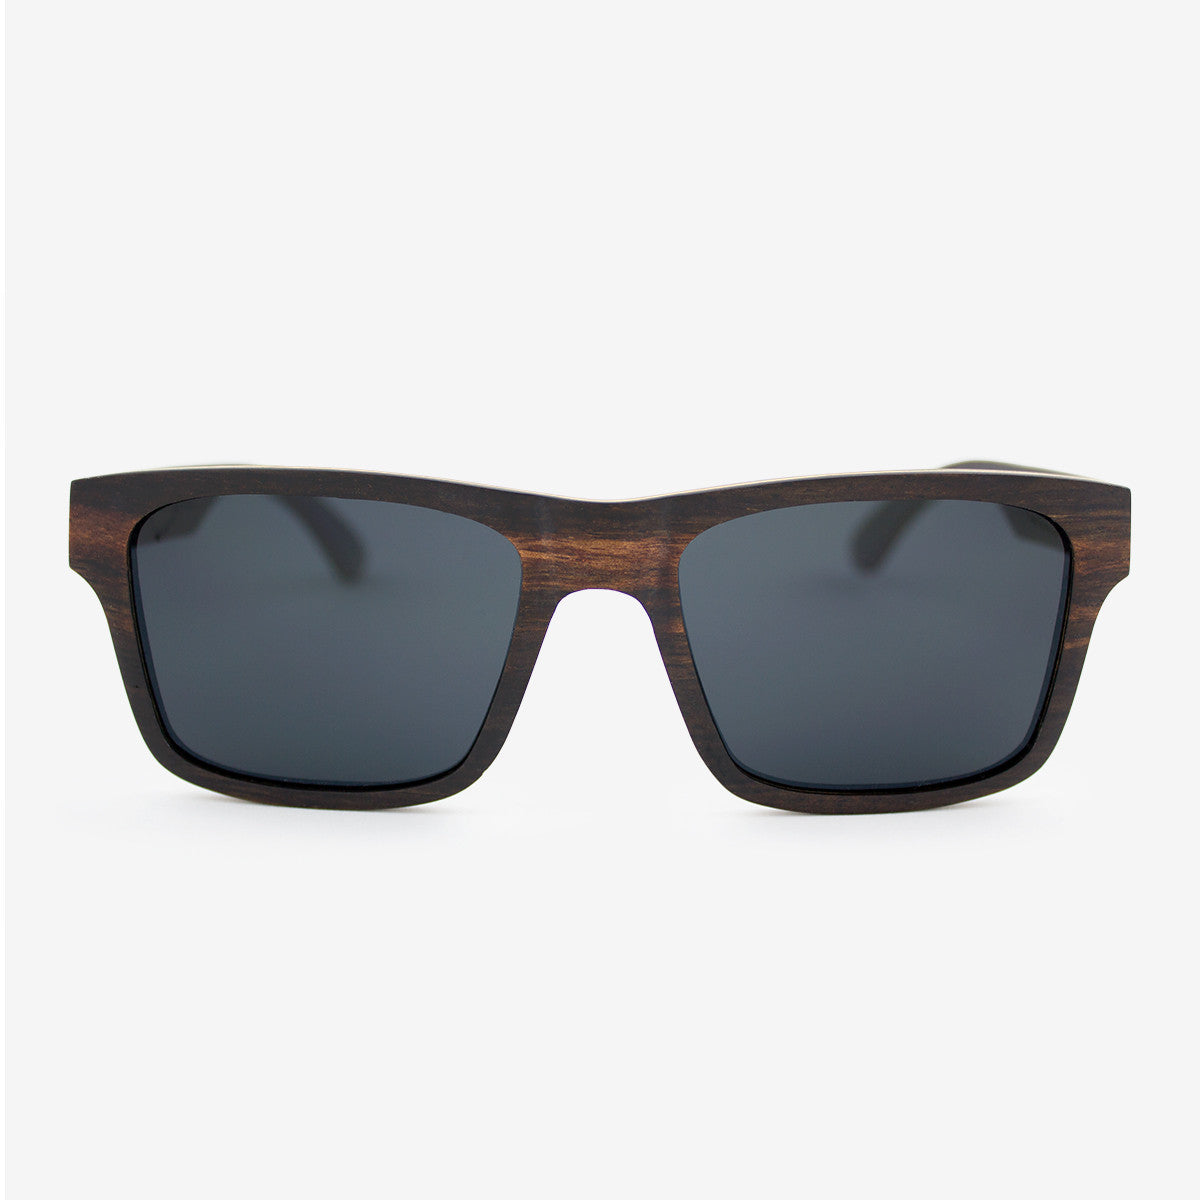 Sebastian ebony adjustable wood sunglasses